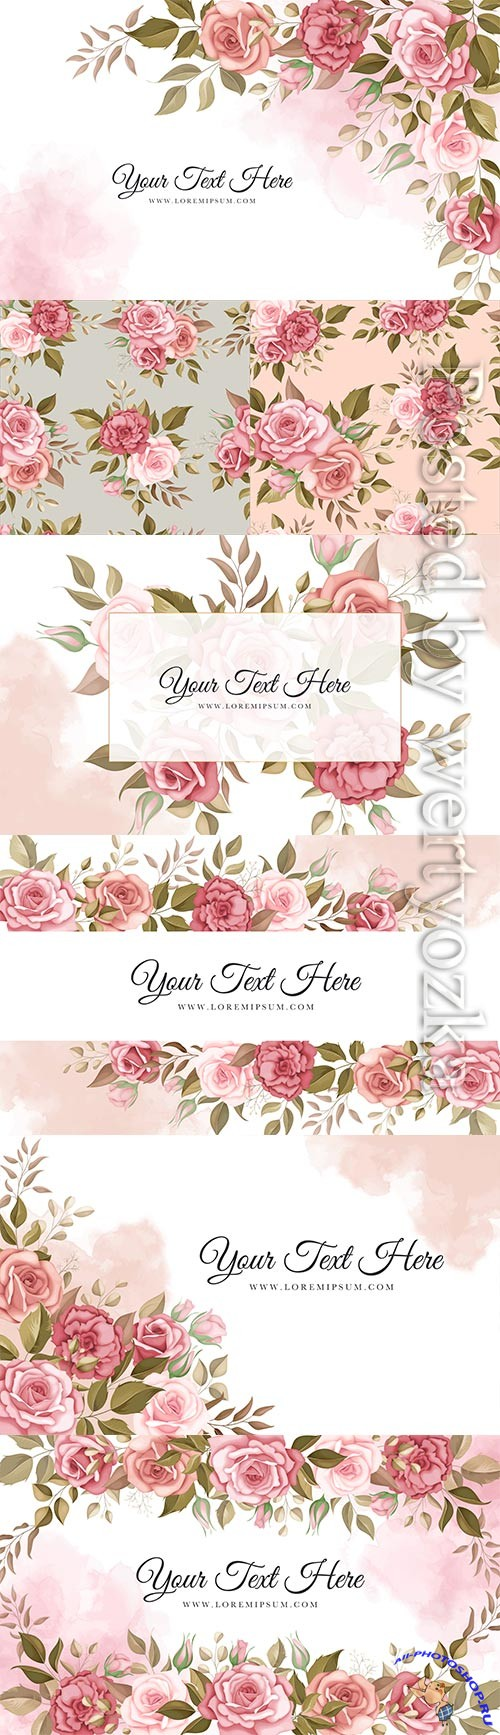 Elegant floral vector background with romantic roses